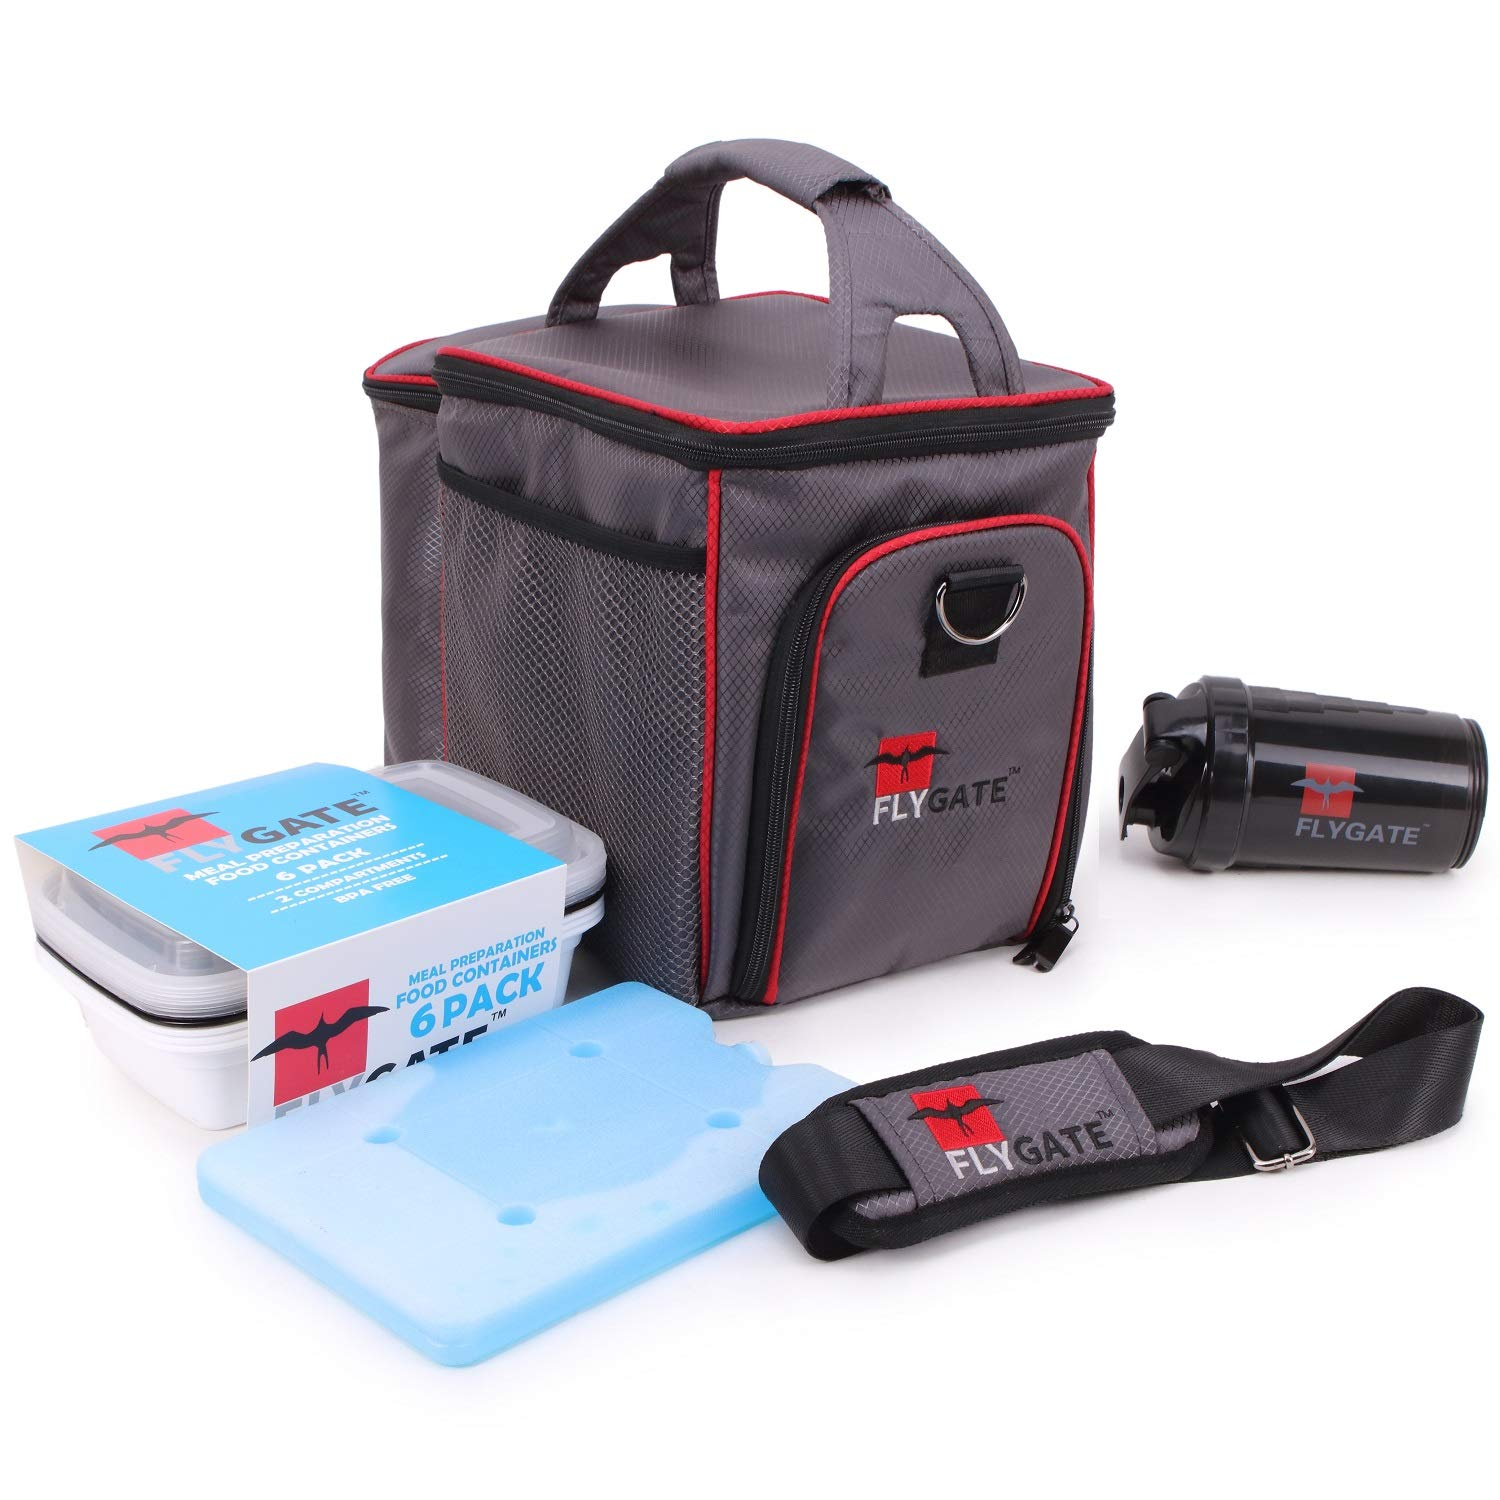 Chapter: Stay Healthy. Insulated Meal Prep Bag - Thermal Cooler bag lunch box system w/ 6x portion control containers, shaker bottle w/ agitator and reusable ice pack for travel, work, gym or picnic